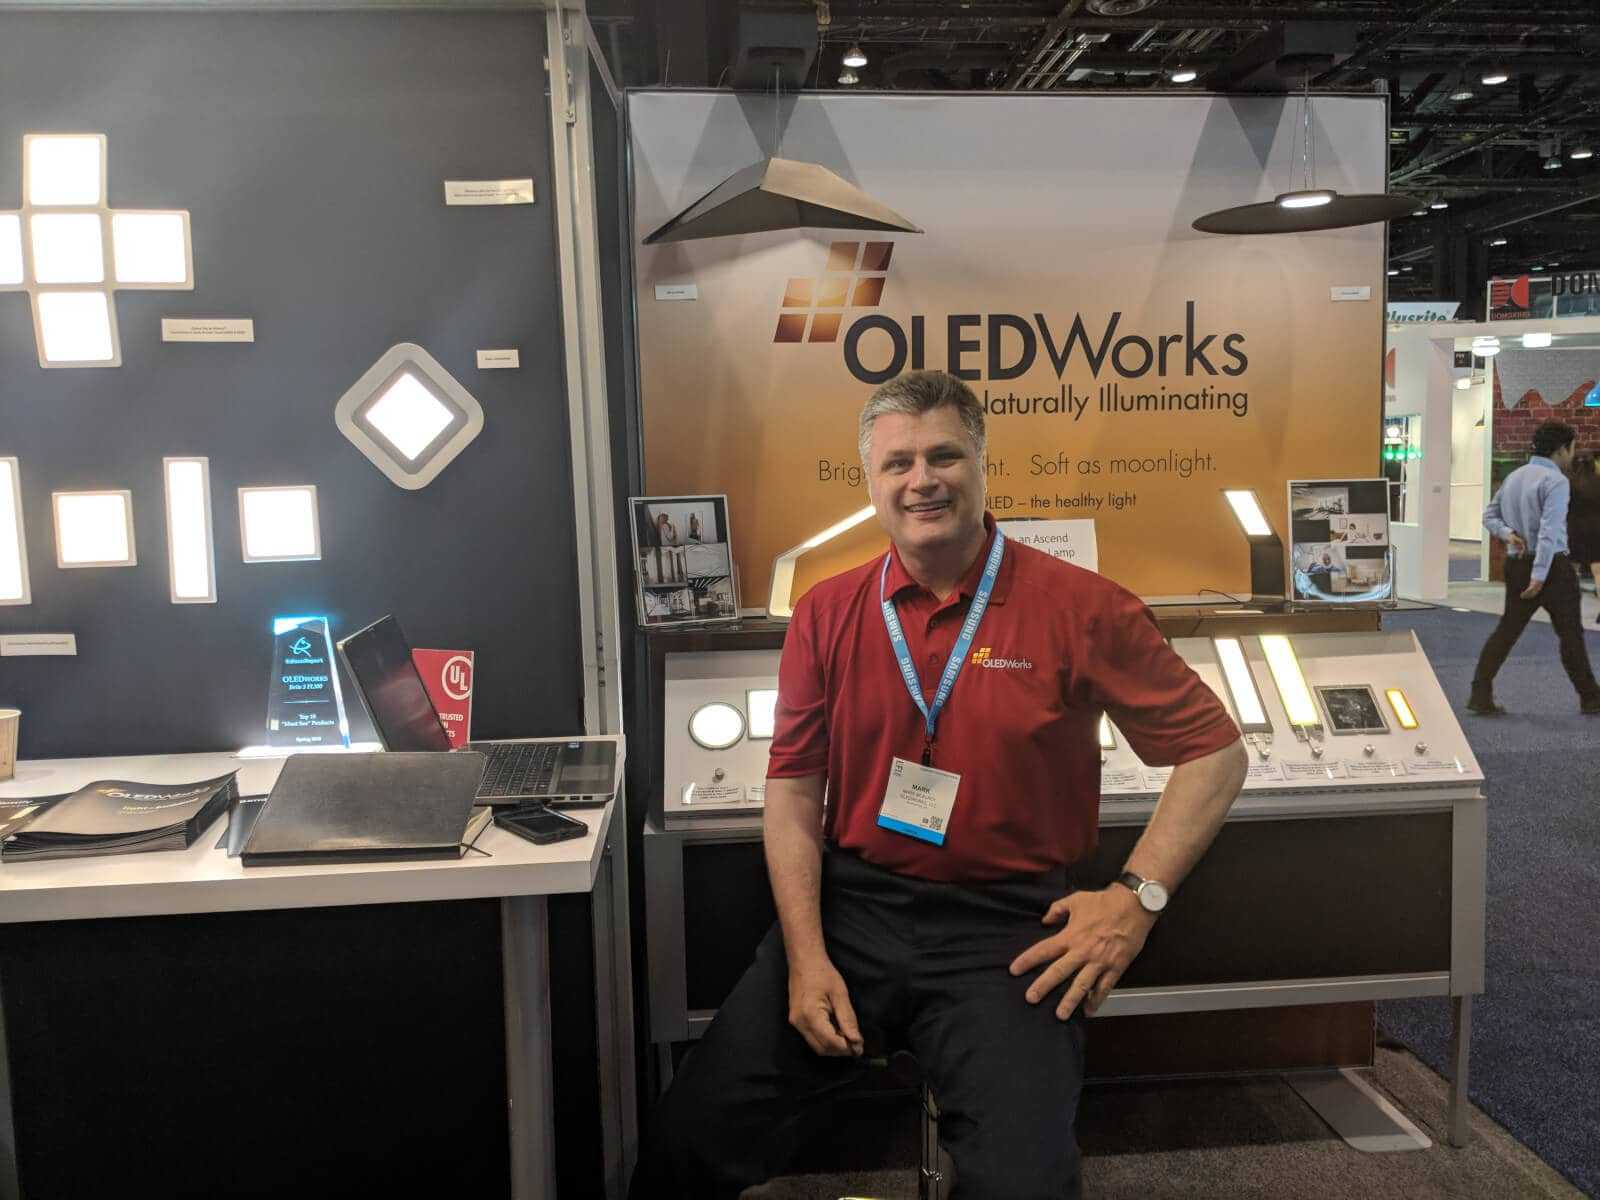 National Accounts Manager Mark McElroy at OLEDWorks booth at Lightfair 2018